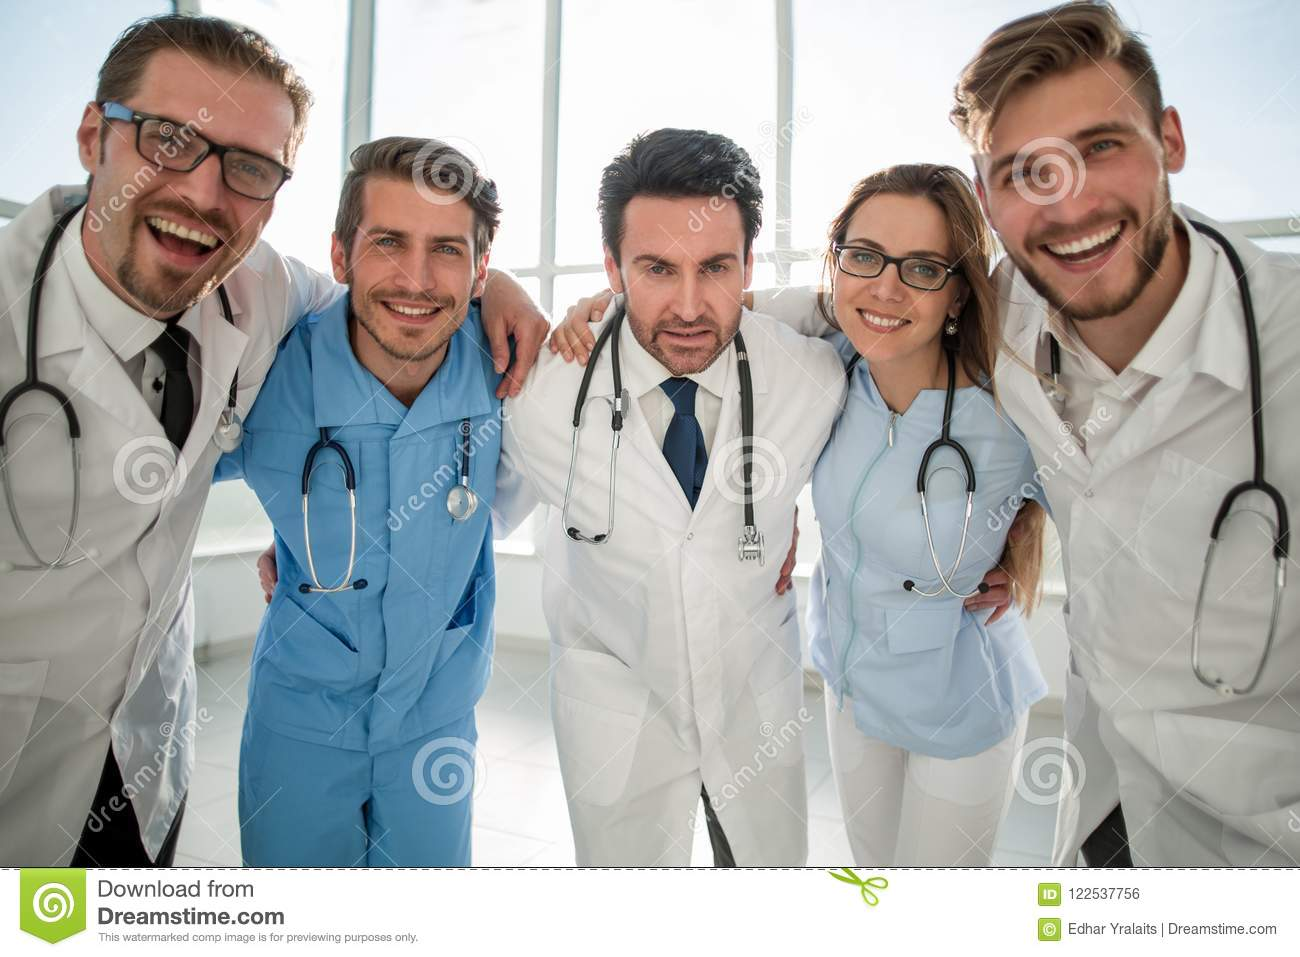 Doctors do what wear in hospital catalog photo